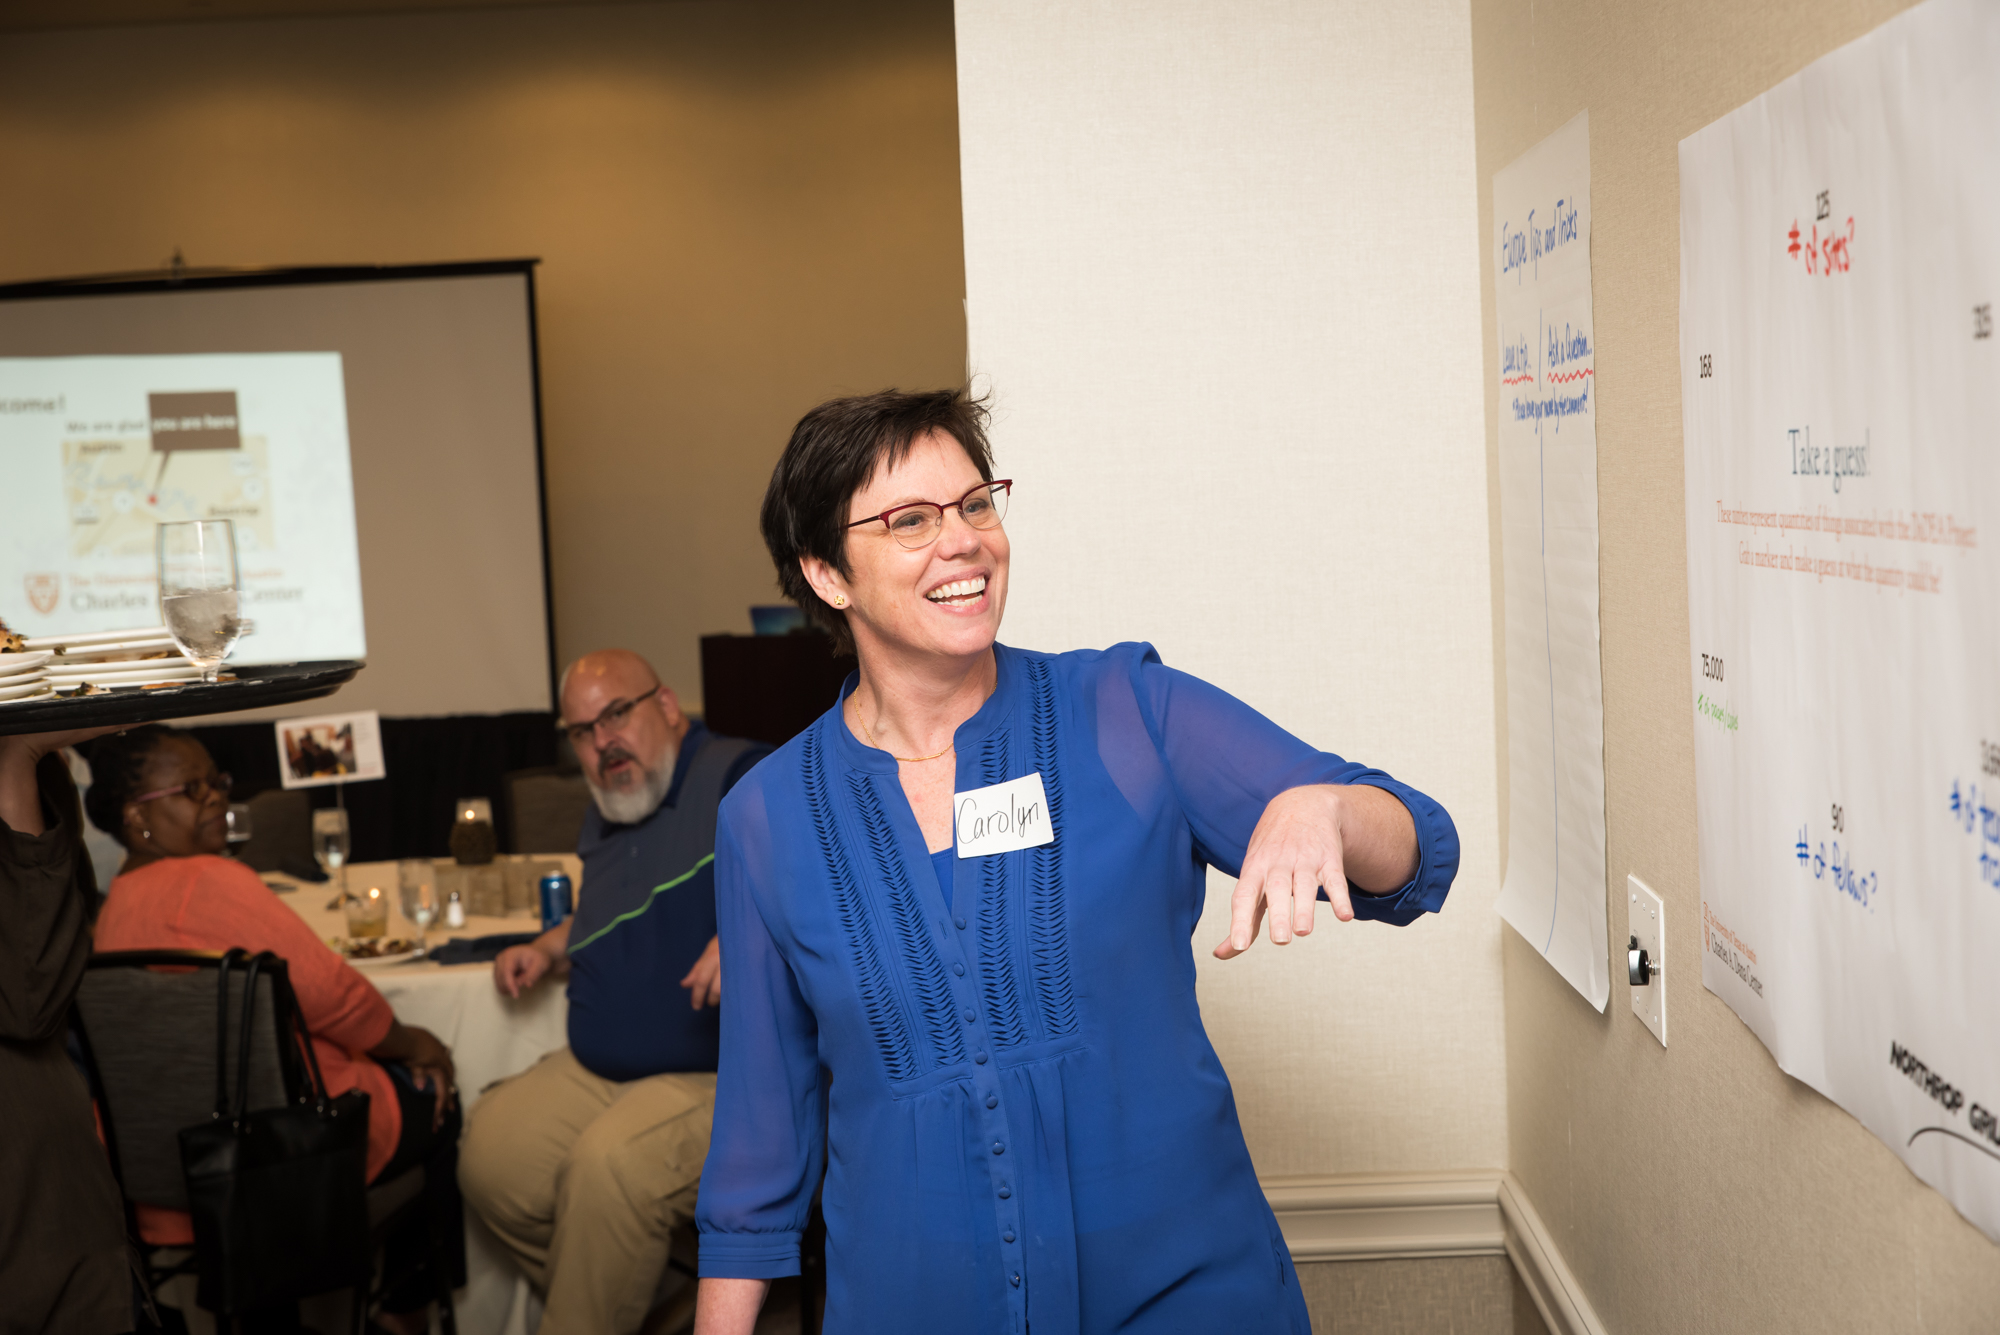 Carolyn Landel at a workshop